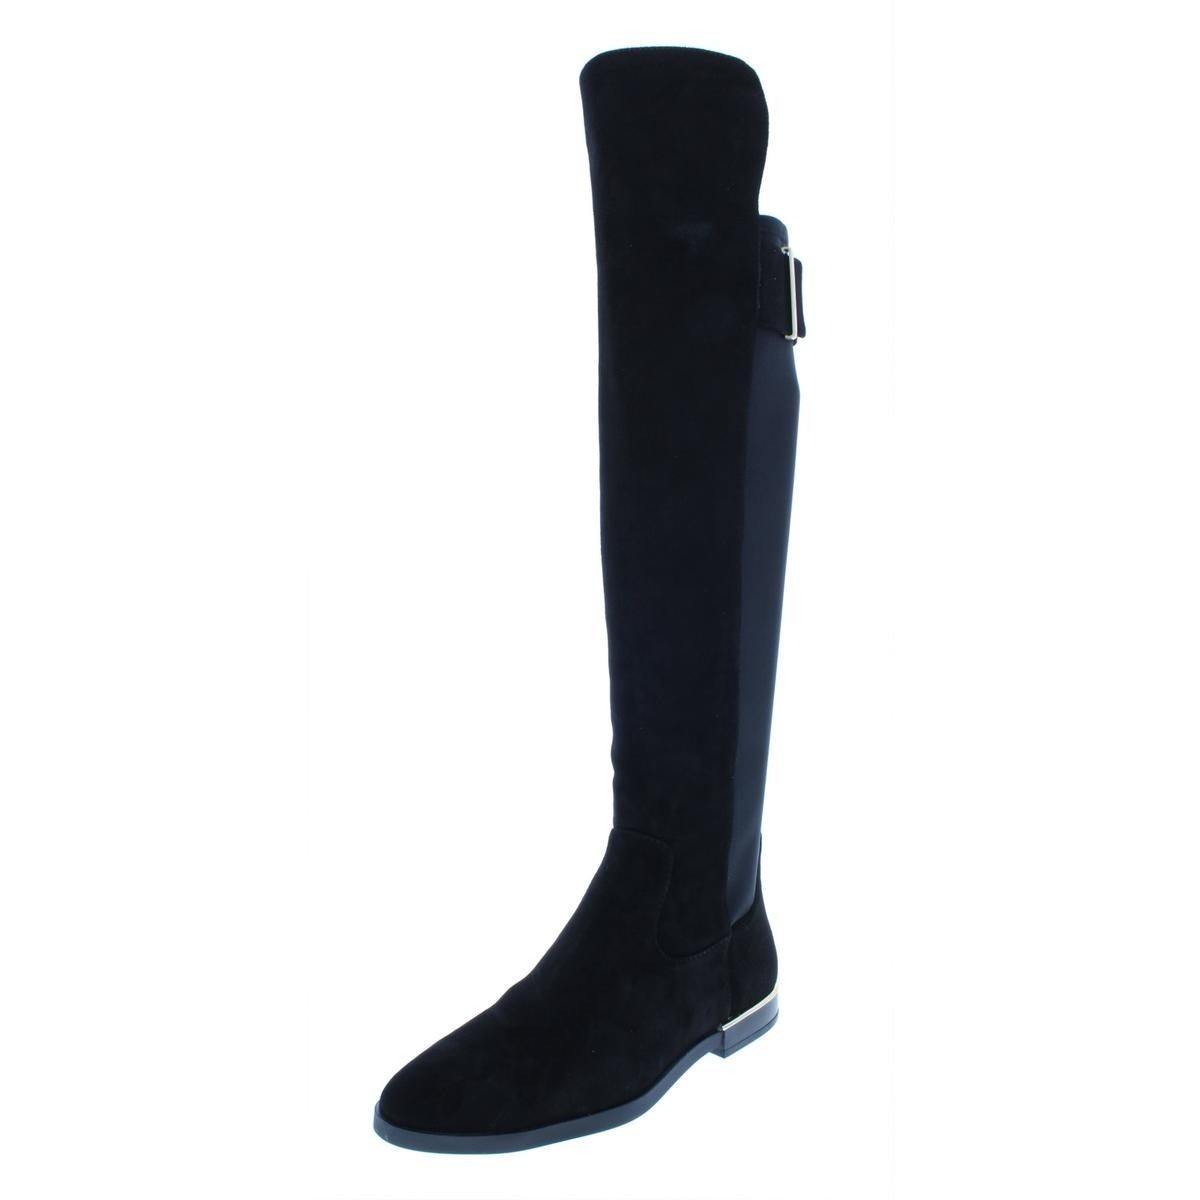 9d187ee0c177 Shop Calvin Klein Womens Priya Over-The-Knee Boots Stretch Riding Boot -  Free Shipping Today - Overstock - 22201301